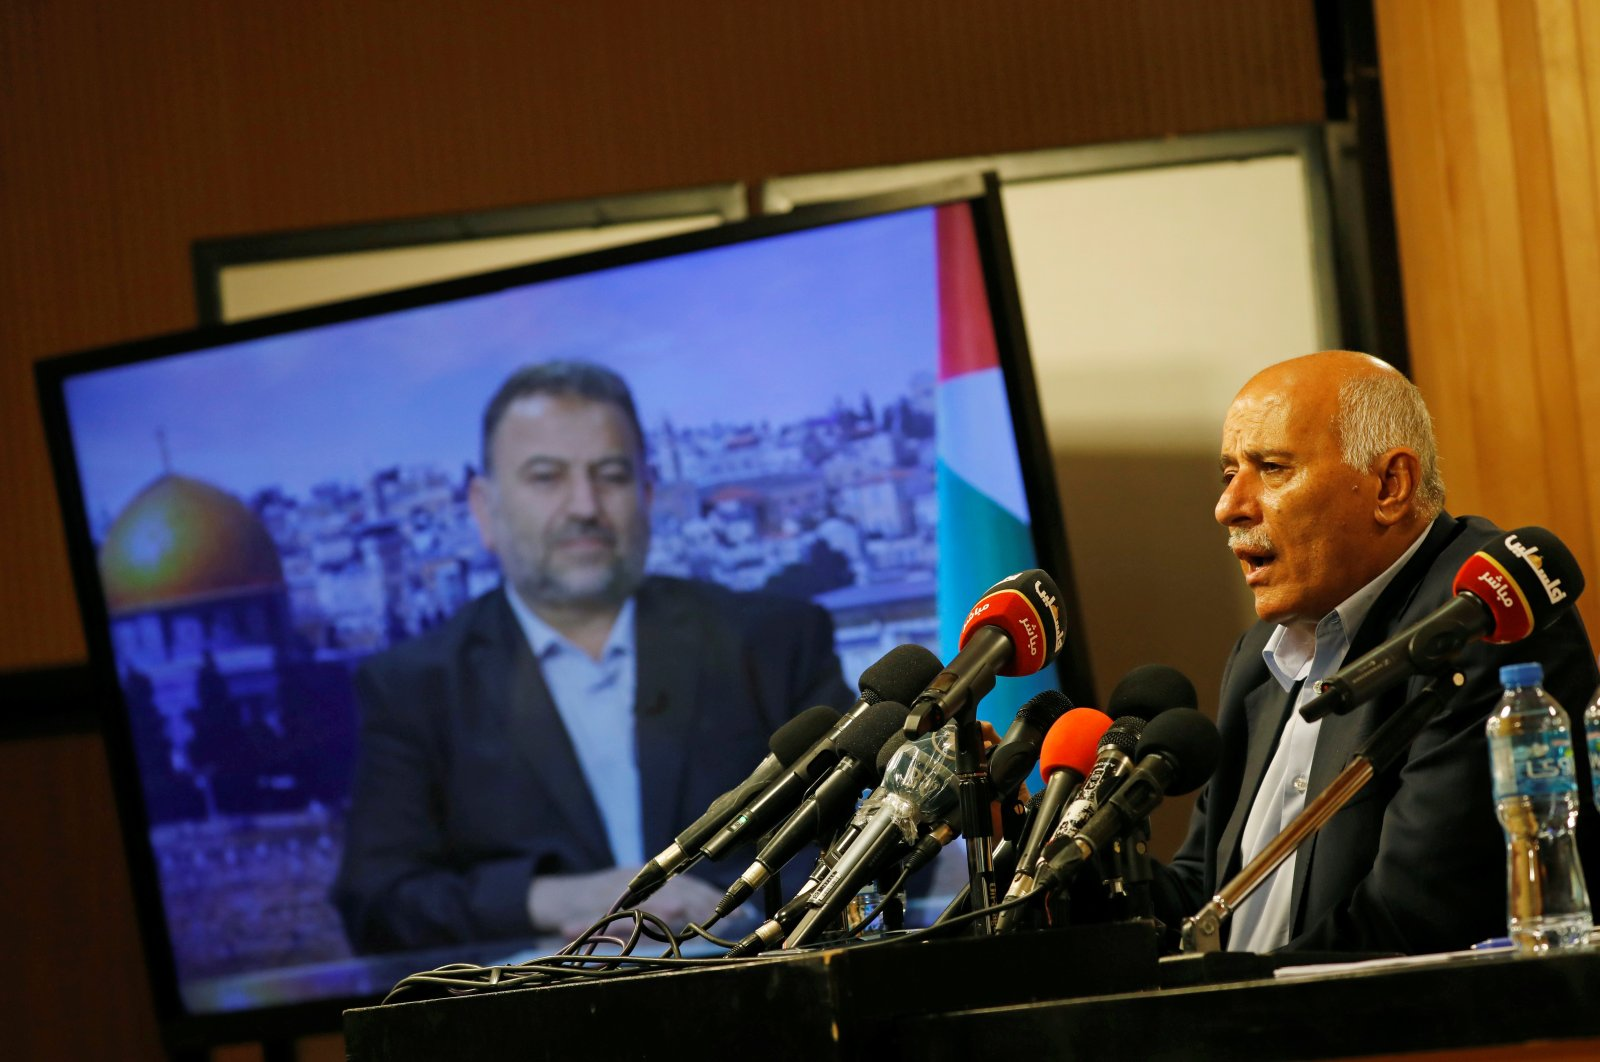 Senior Fatah official Jibril Rajoub speaks as deputy Hamas chief Saleh Arouri appears on a television screen during a videoconference to discuss Israel's plan to annex parts of the Israeli-occupied West Bank, in Ramallah, Palestine, July 2, 2020. (Reuters Photo)